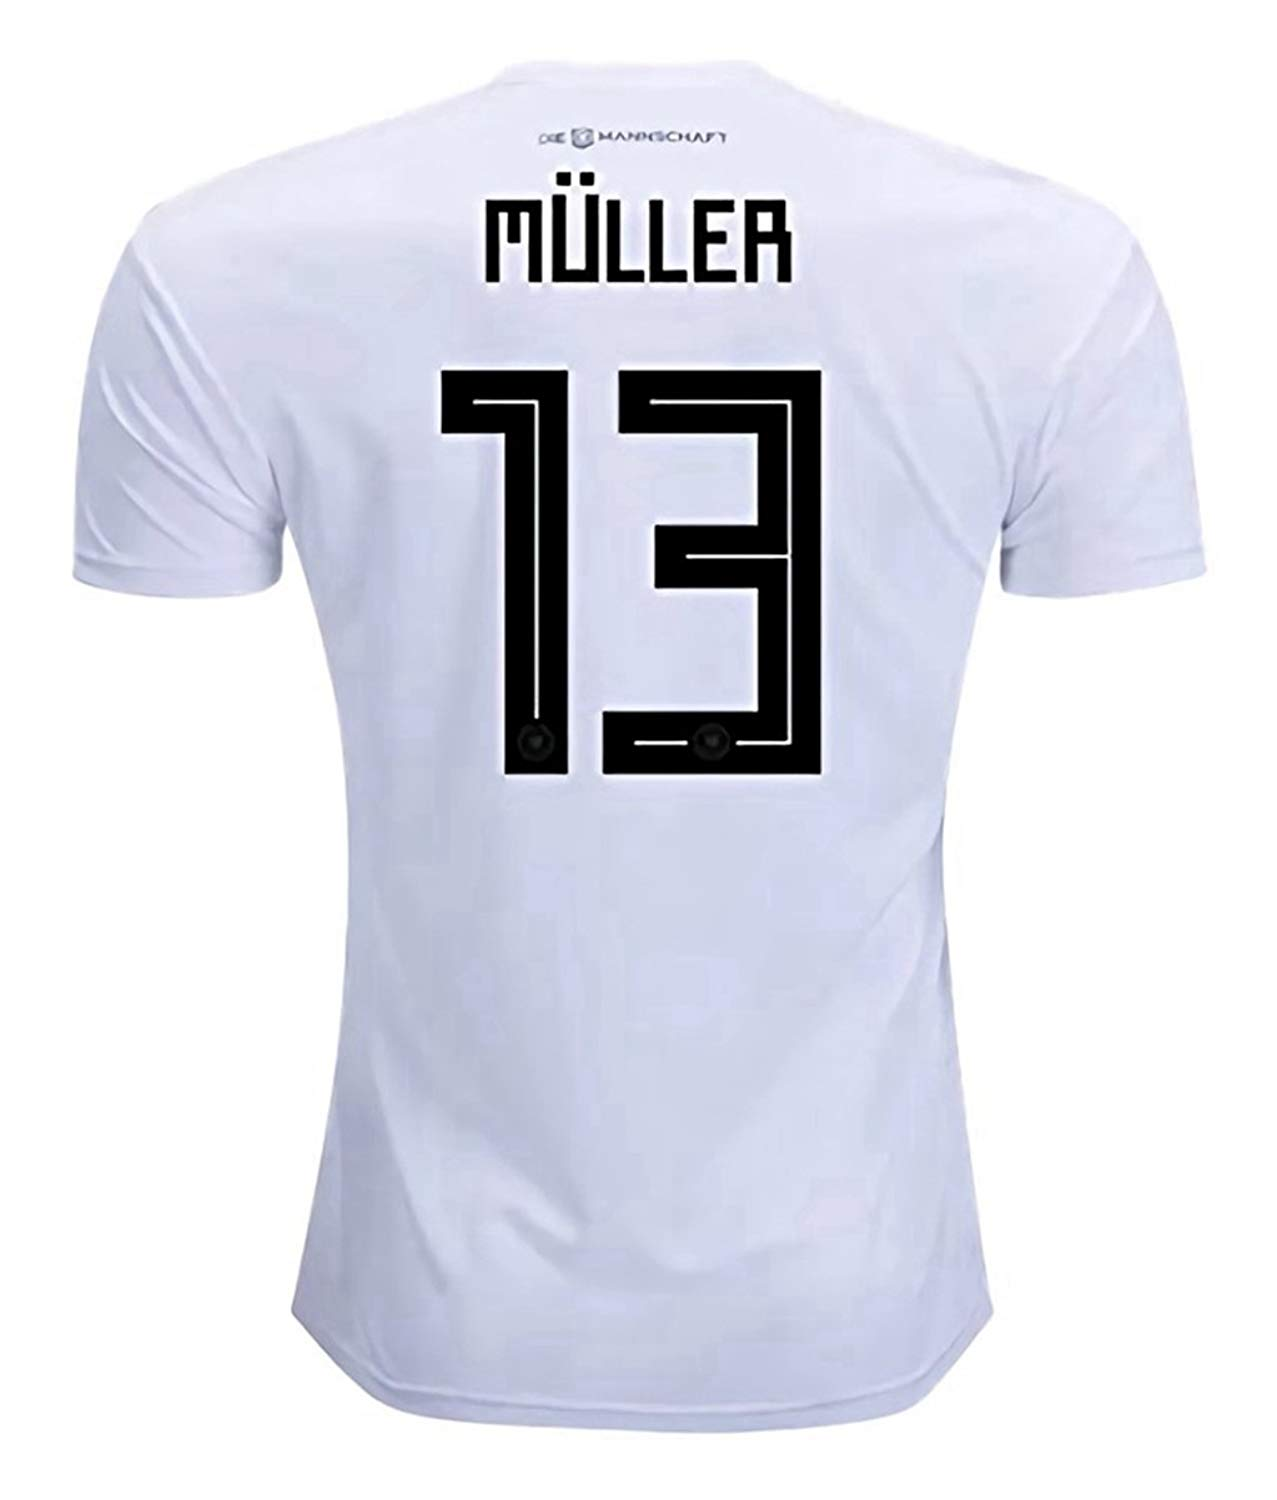 a38bcbc4ba6 Get Quotations · CampJuly 2018 World Cup Soccer Team Germany Muller 13 Home Men's  Jersey Color White